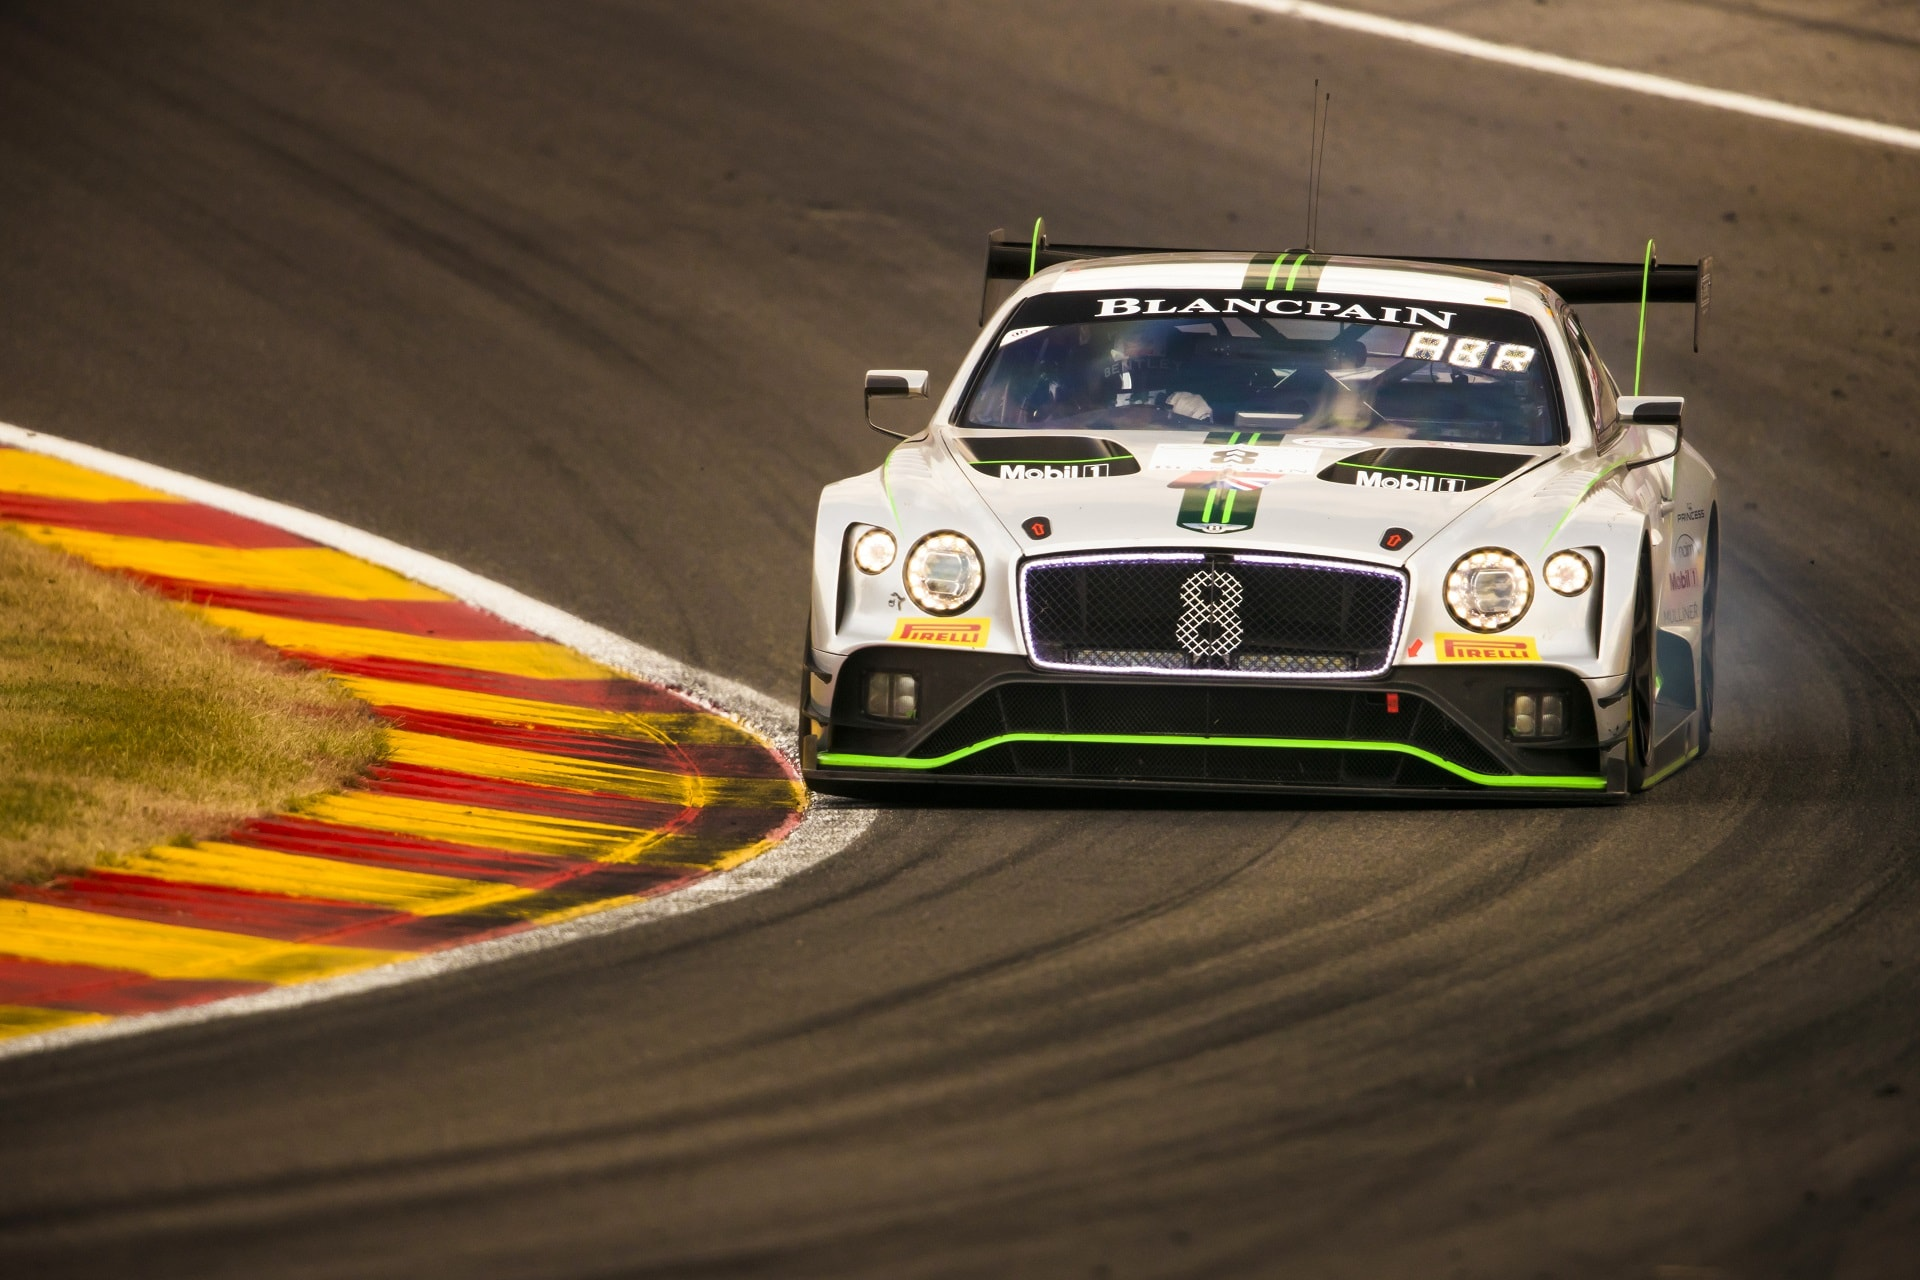 The Continental GT3 led at Spa 24 Hours